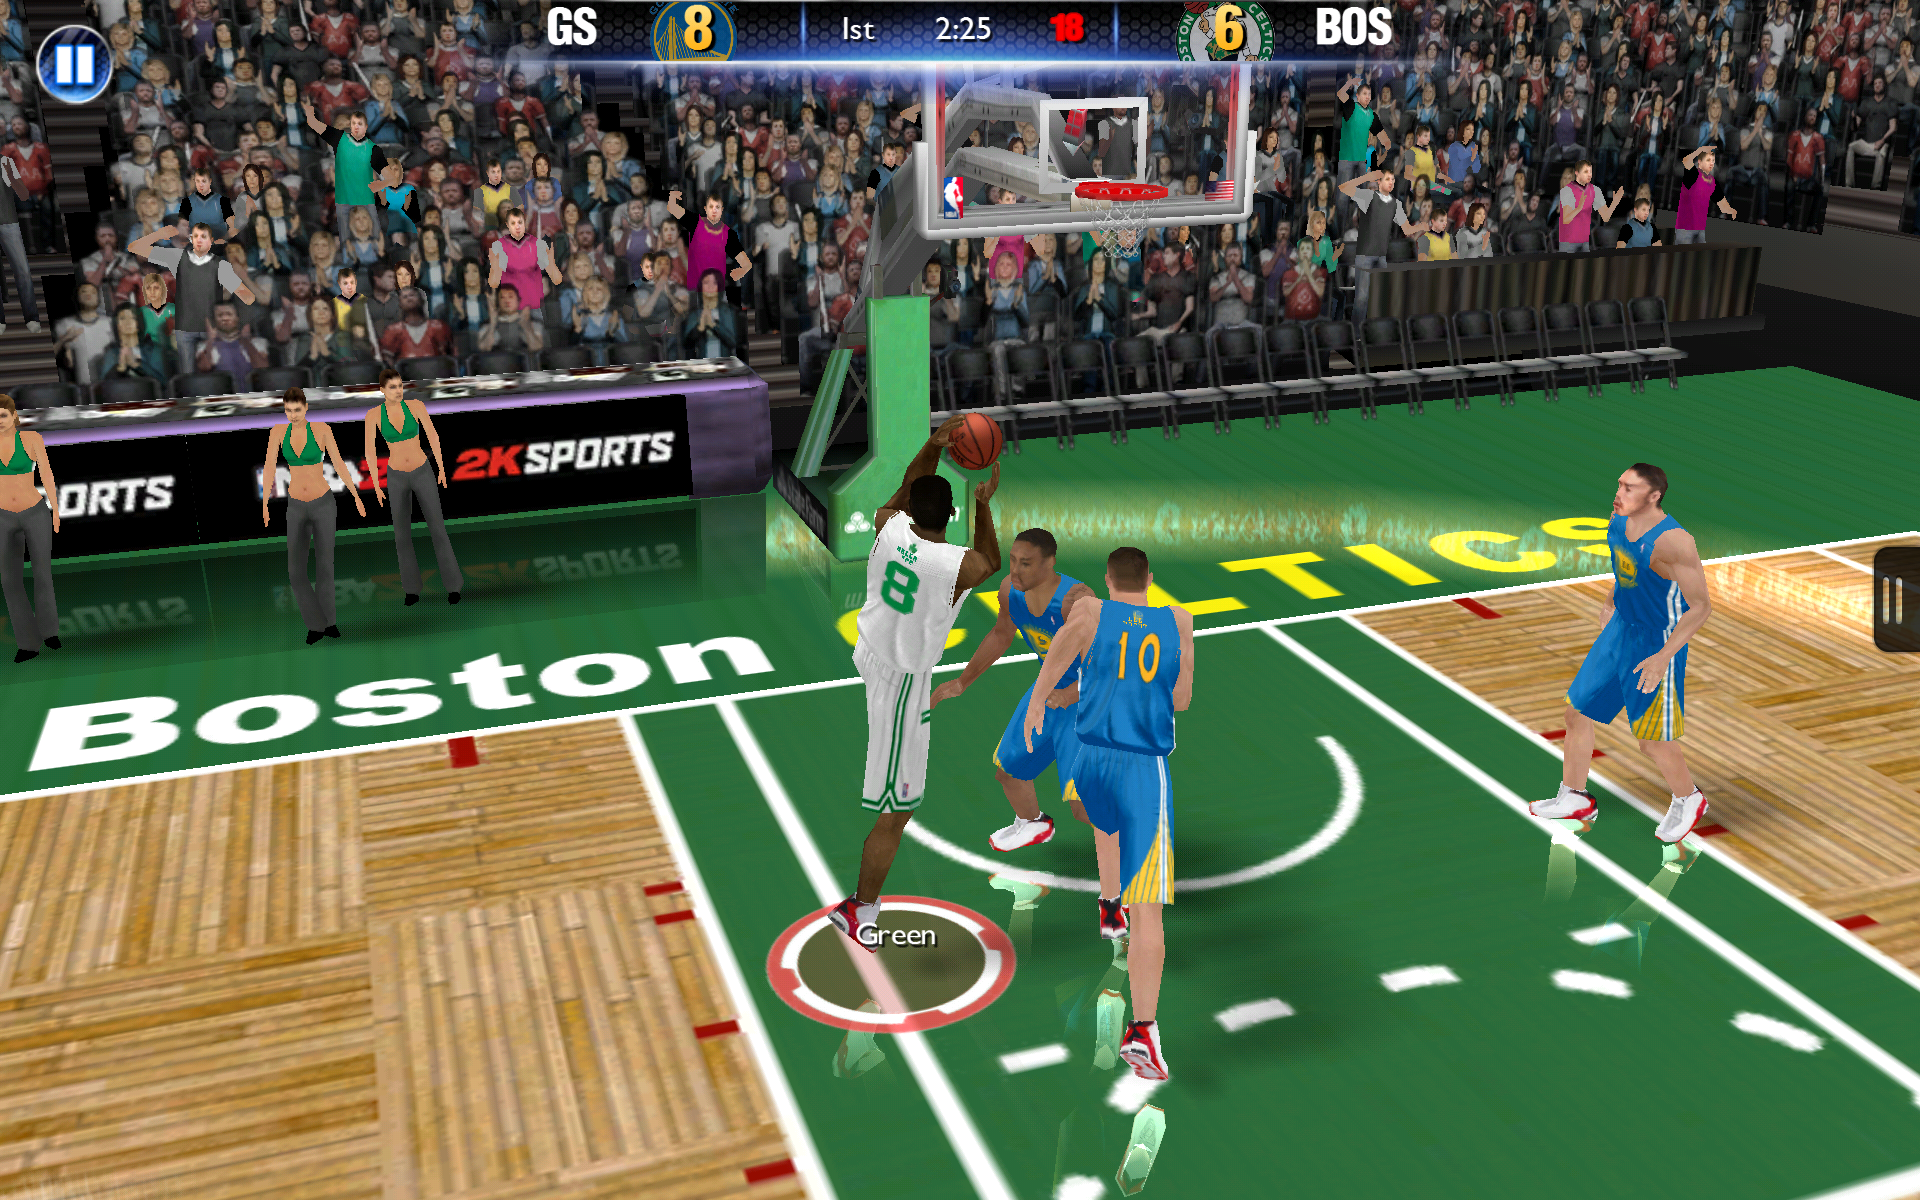 2k games news - Android Police - Android news, reviews, apps